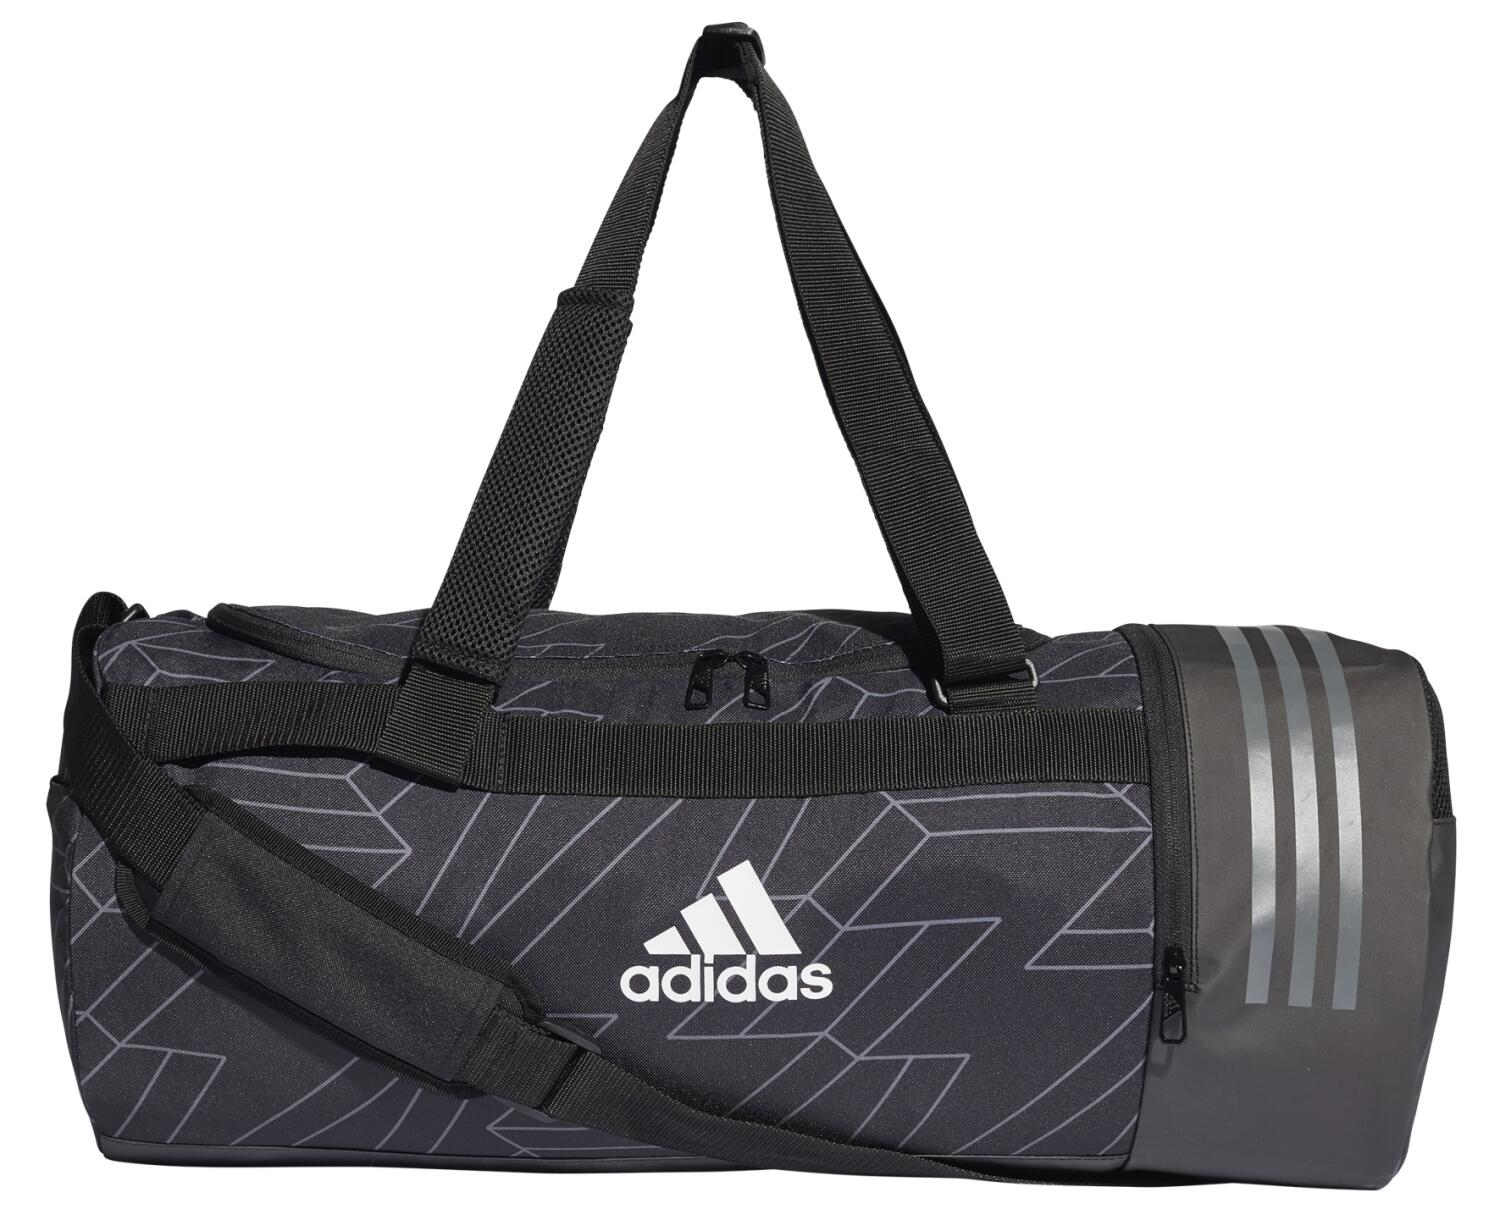 adidas-core-training-duffelbag-m-tasche-farbe-black-grey-four-white-